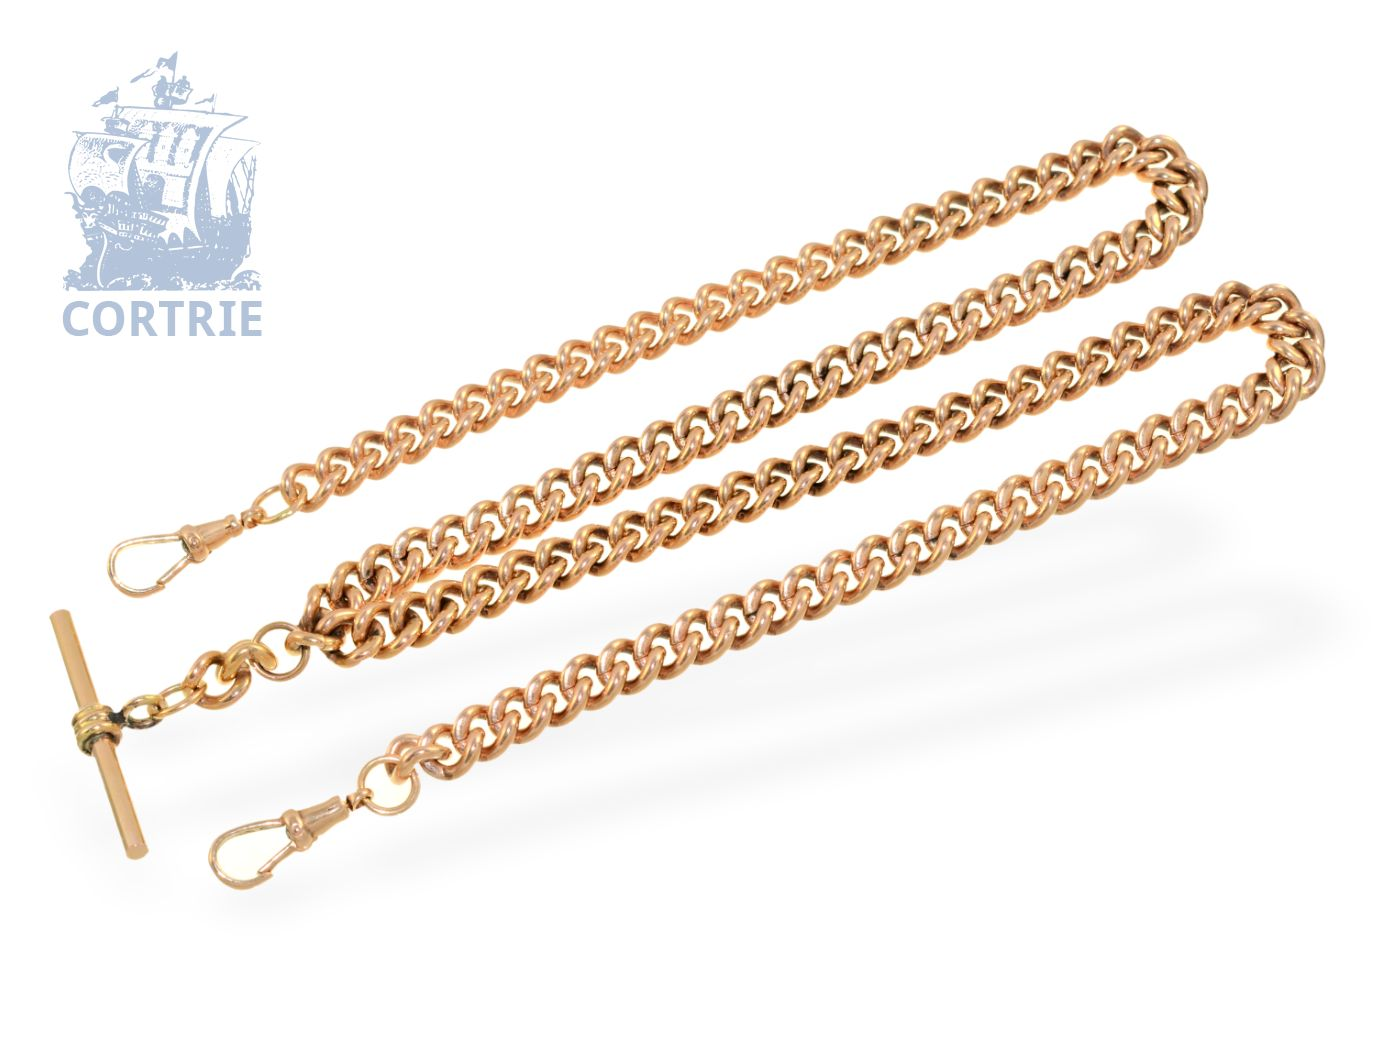 Watch chain: heavy English pocket watch chain, solid pink gold, England ca. 1900-